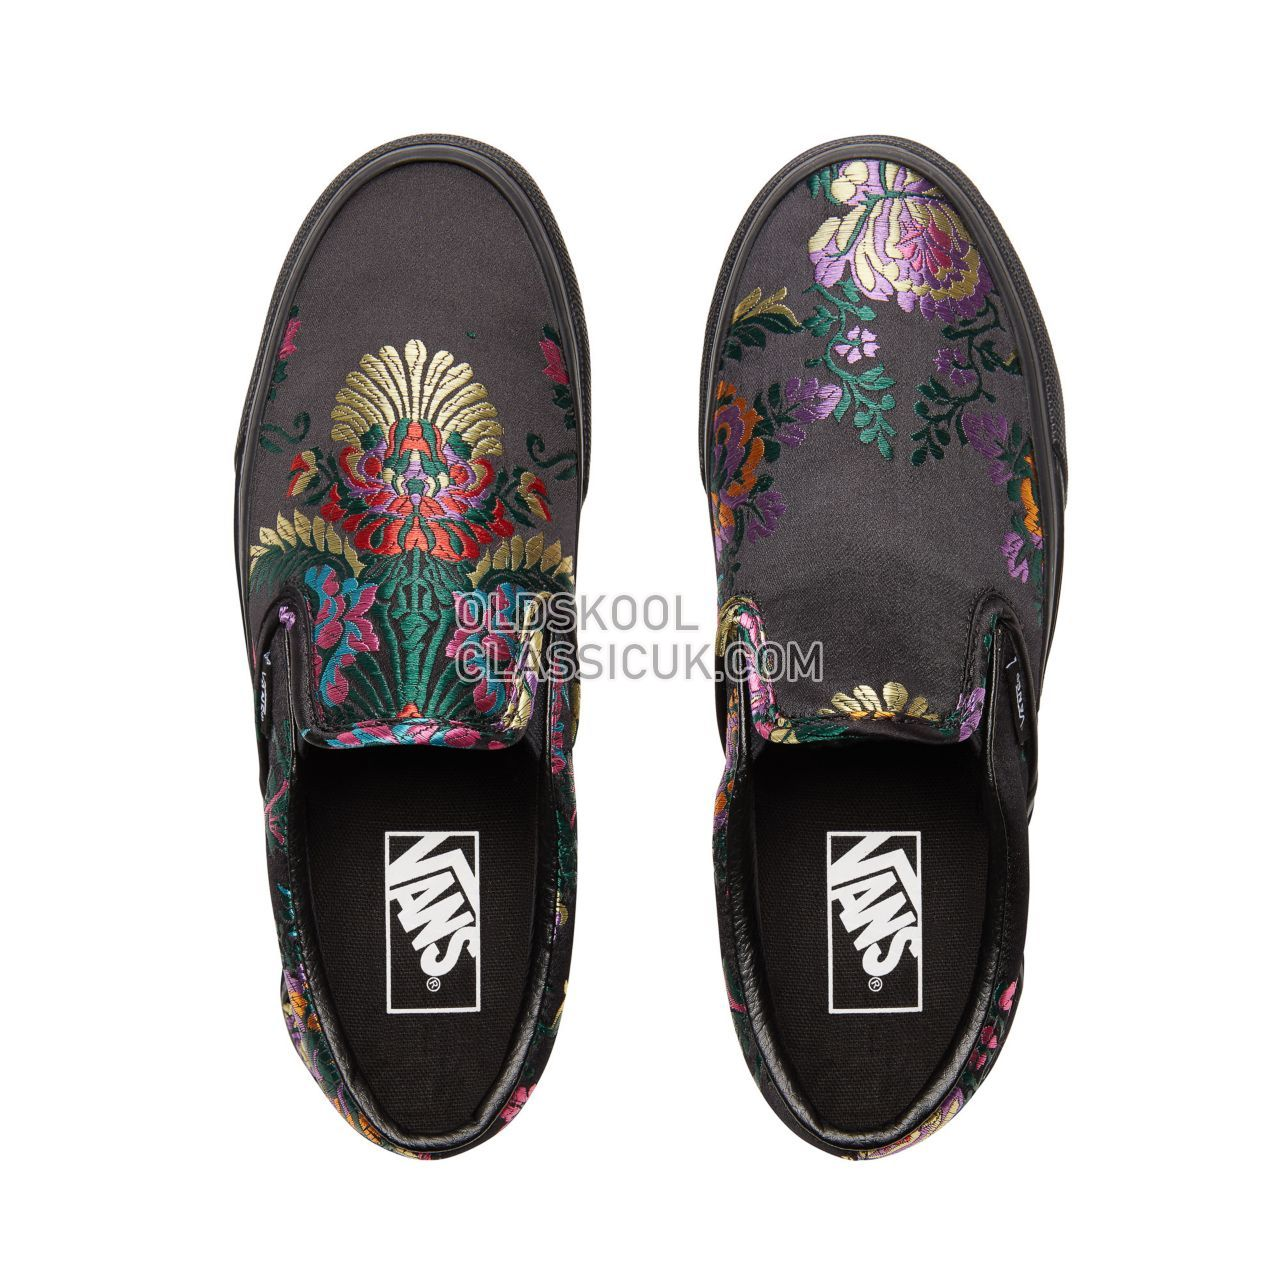 Vans Festival Satin Classic Slip-On Sneakers Womens (Festival Satin) Black/Black VN0A38F7ULN Shoes